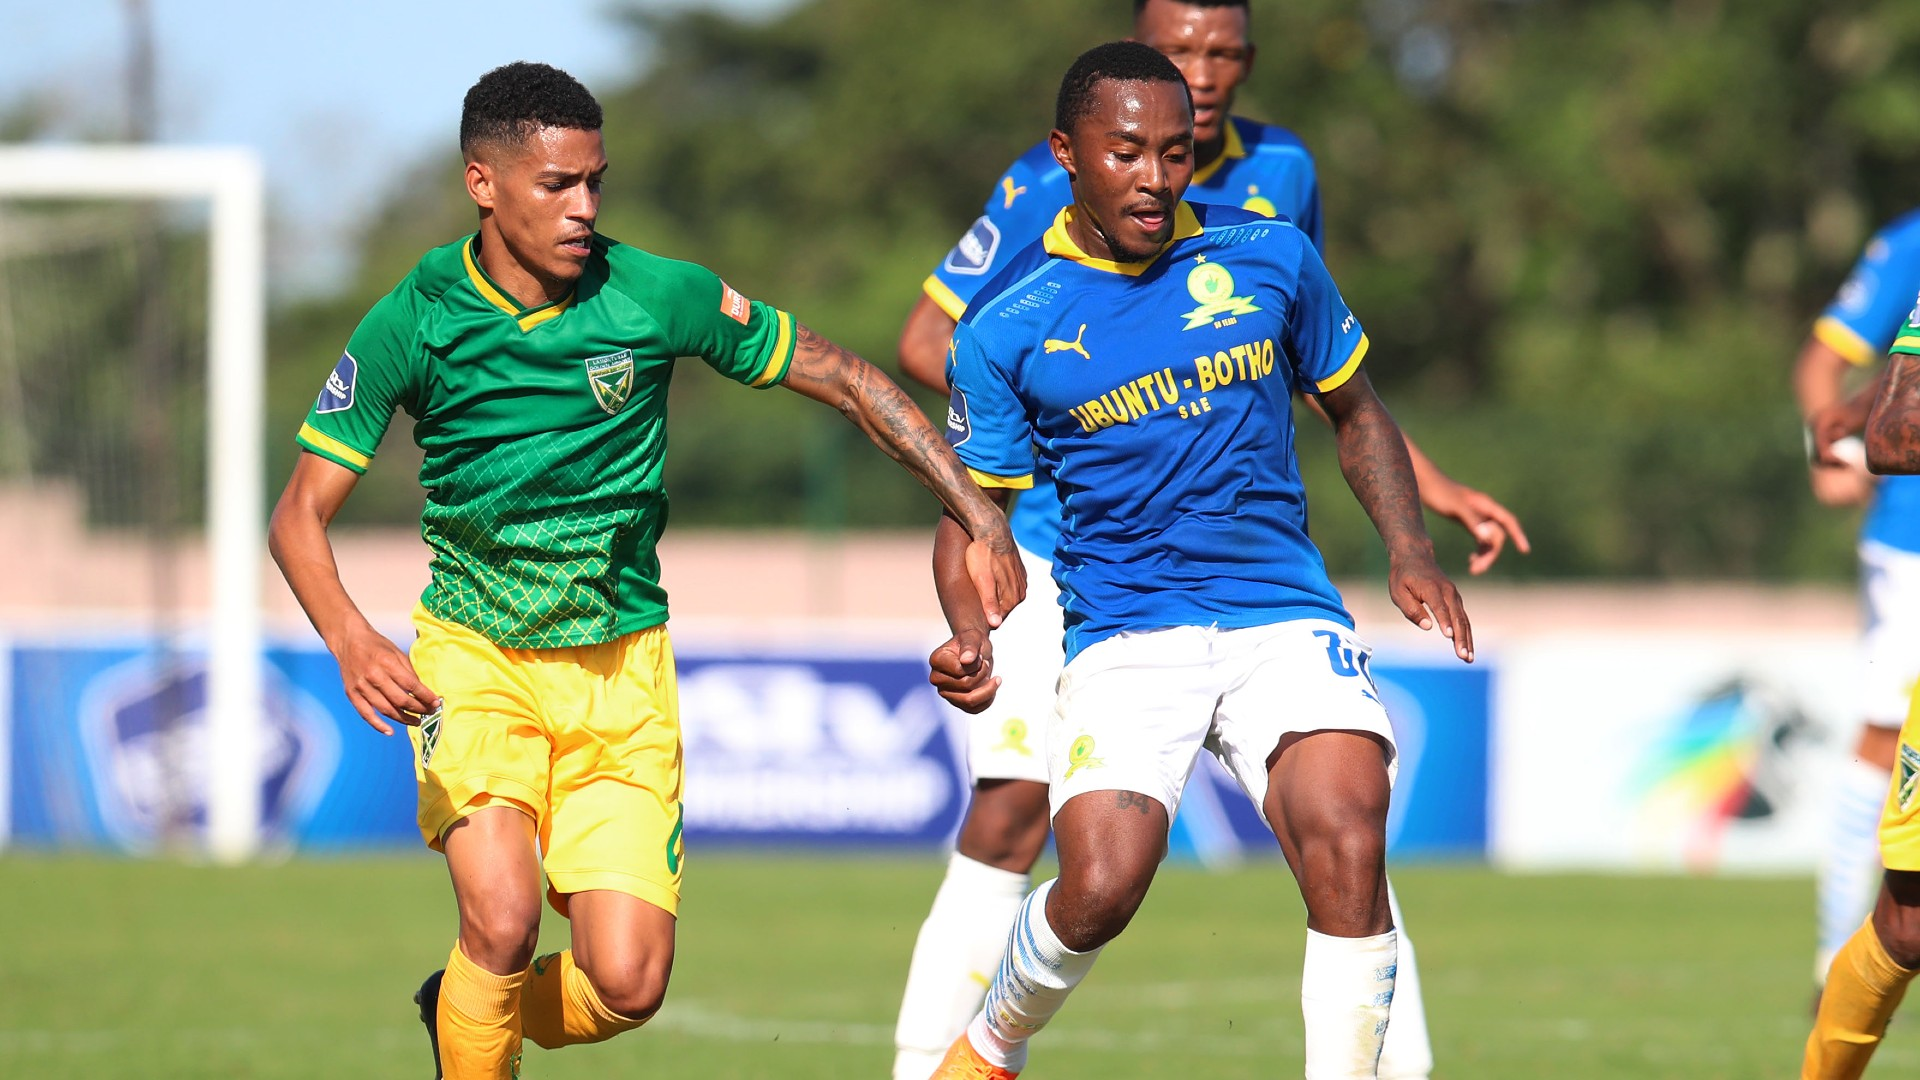 Golden Arrows 1-1 Mamelodi Sundowns: Abafana Bes'thende fight back to hold Masandawana